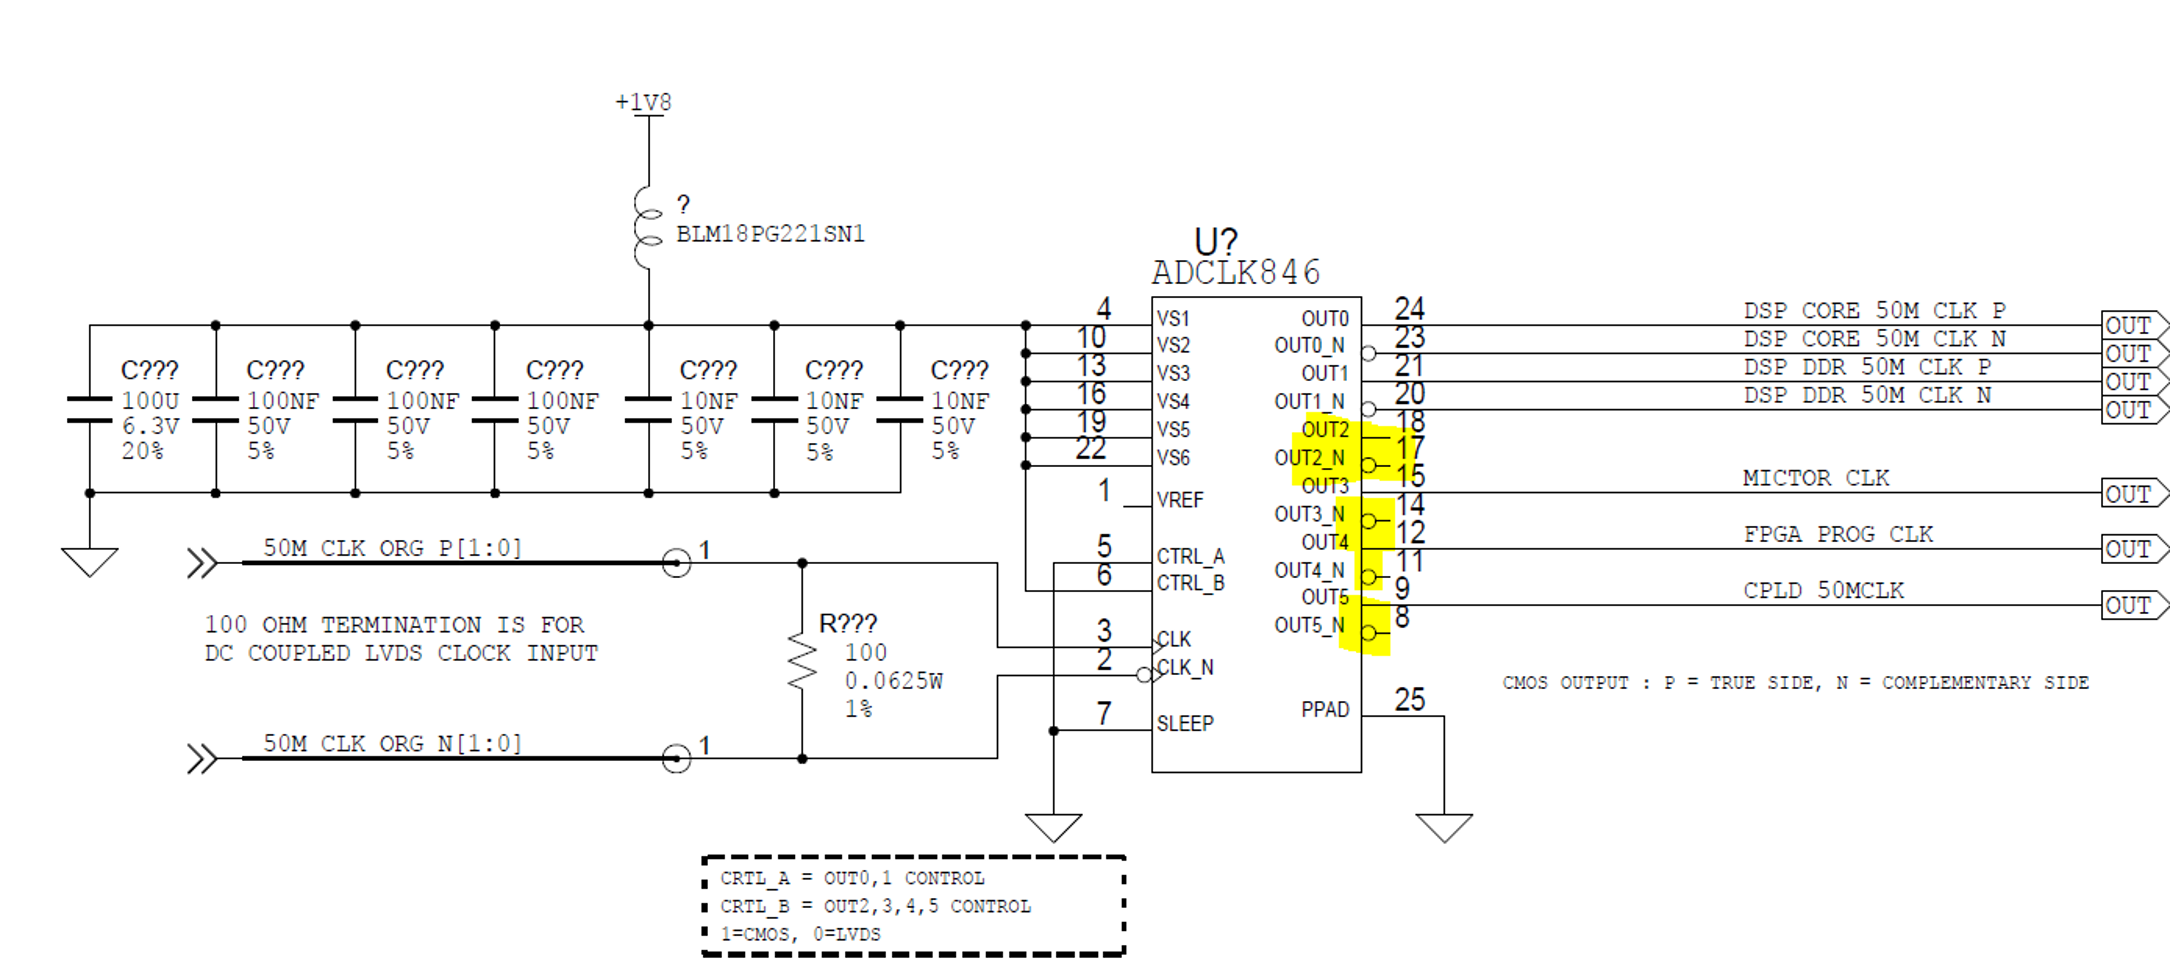 ADCLK846 , unused output - Q&A - Clock and Timing - EngineerZone